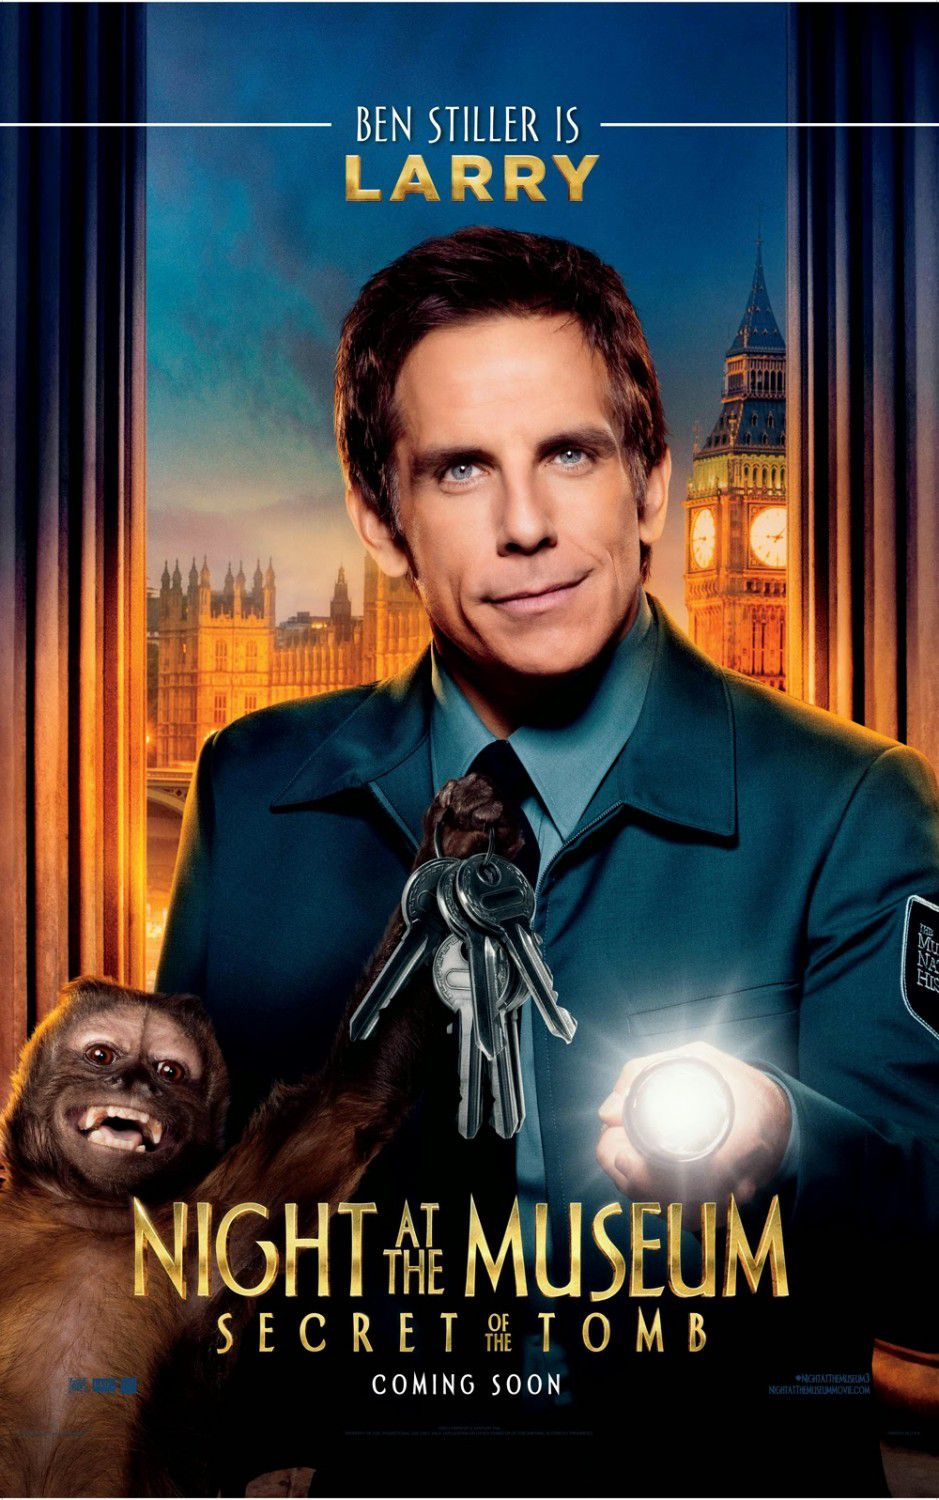 Una Notte al Museo 3 - Night at the Museum 3 - Secret of the Tomb - poster - Larry (Ben Stiller)